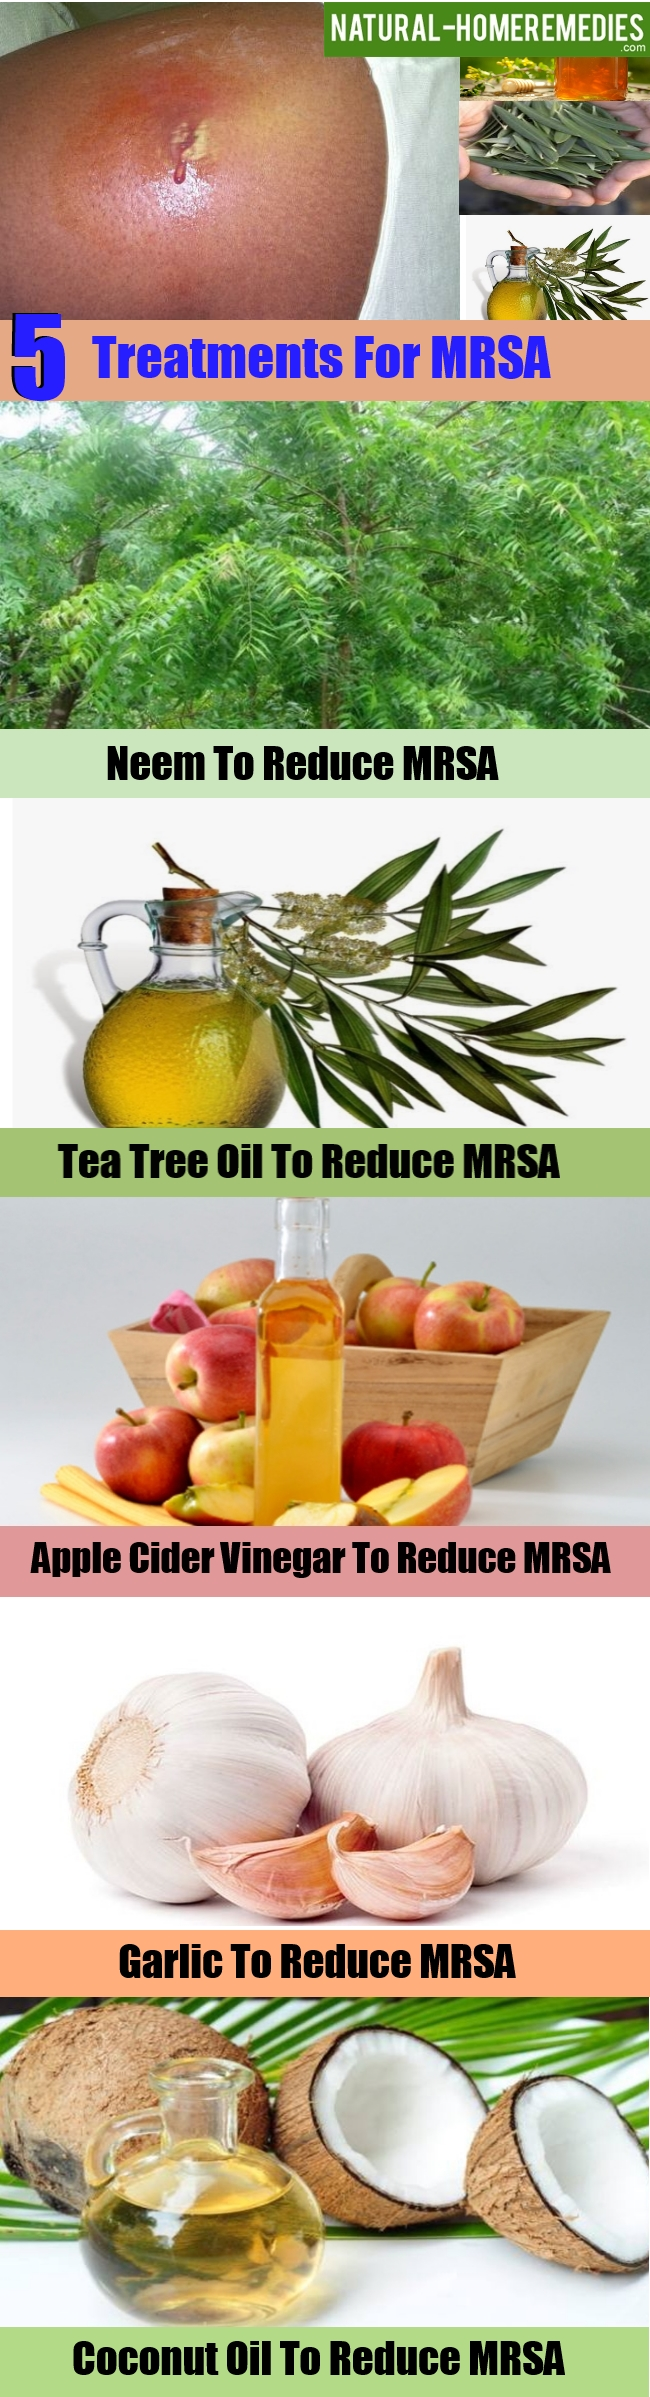 5 Effective Treatments For MRSA – Natural Home Remedies & Supplements